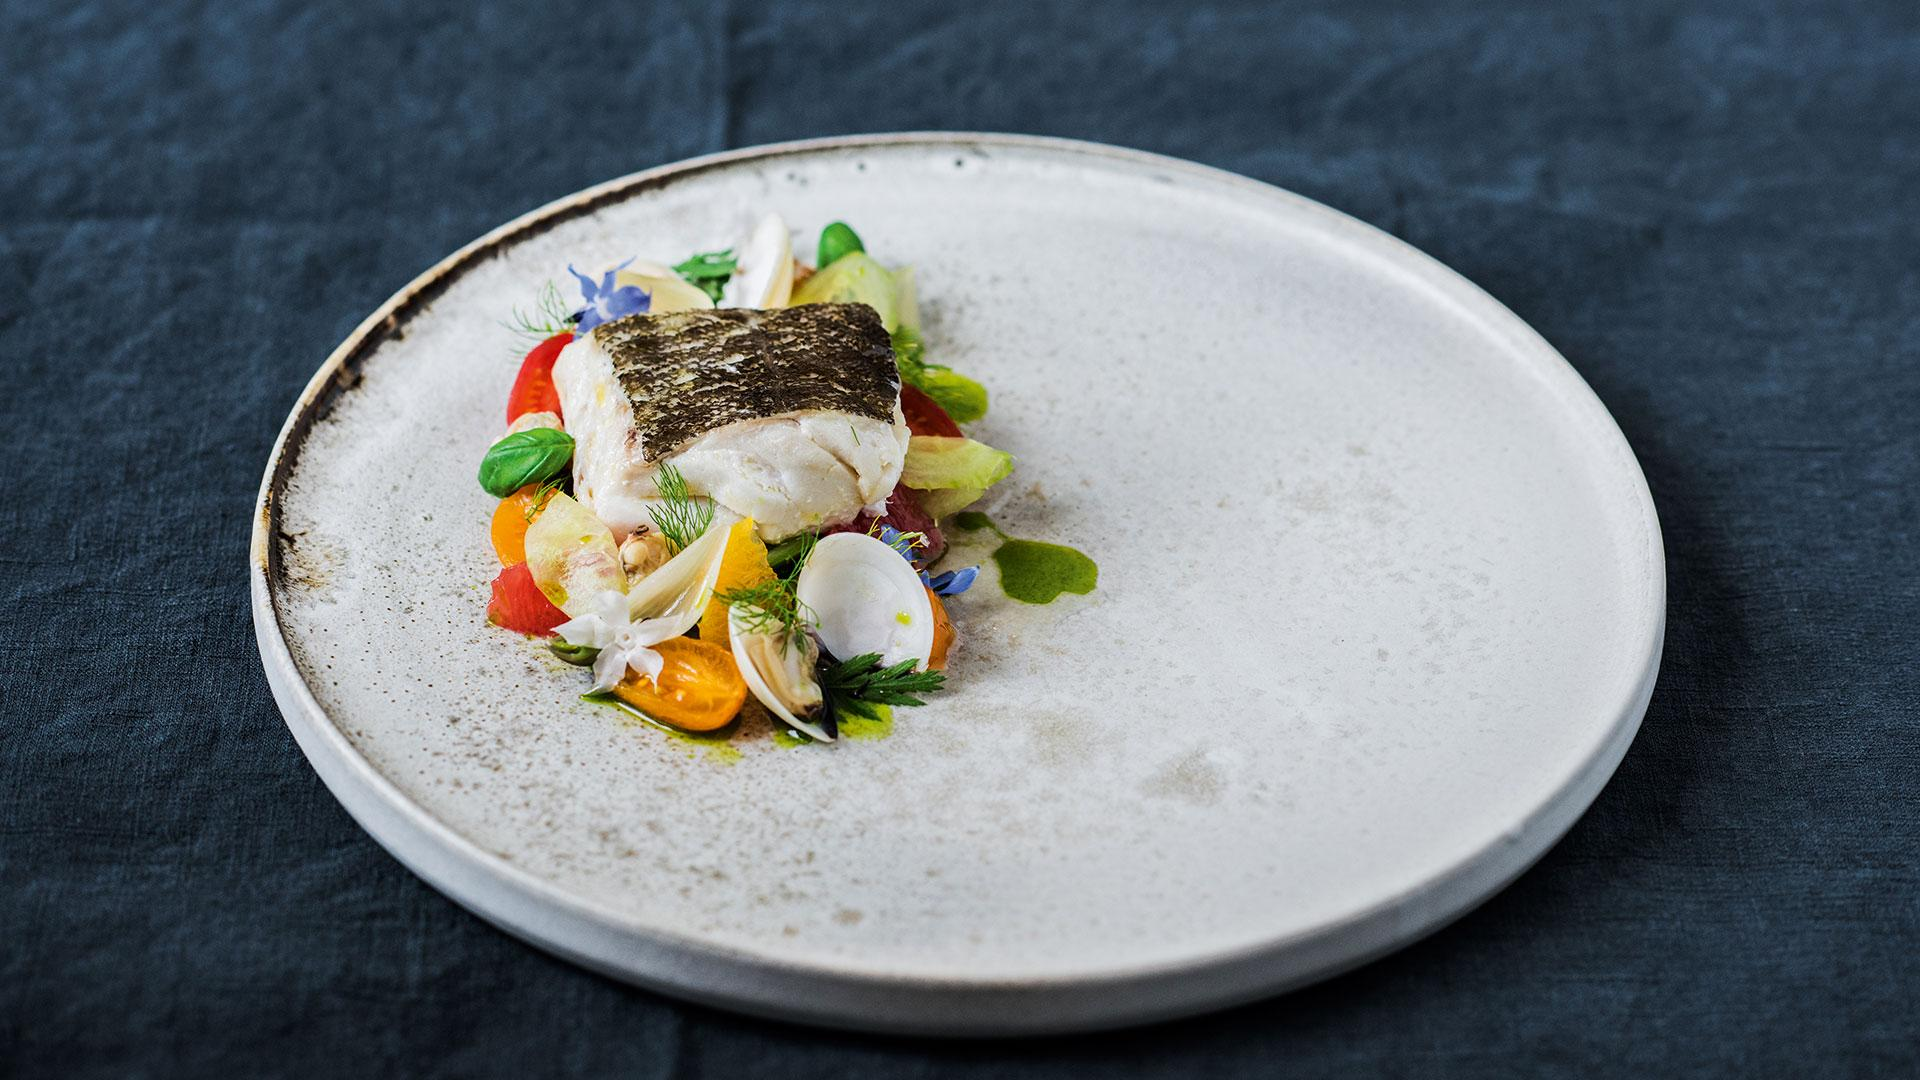 A Recipe from Simon Hulstone